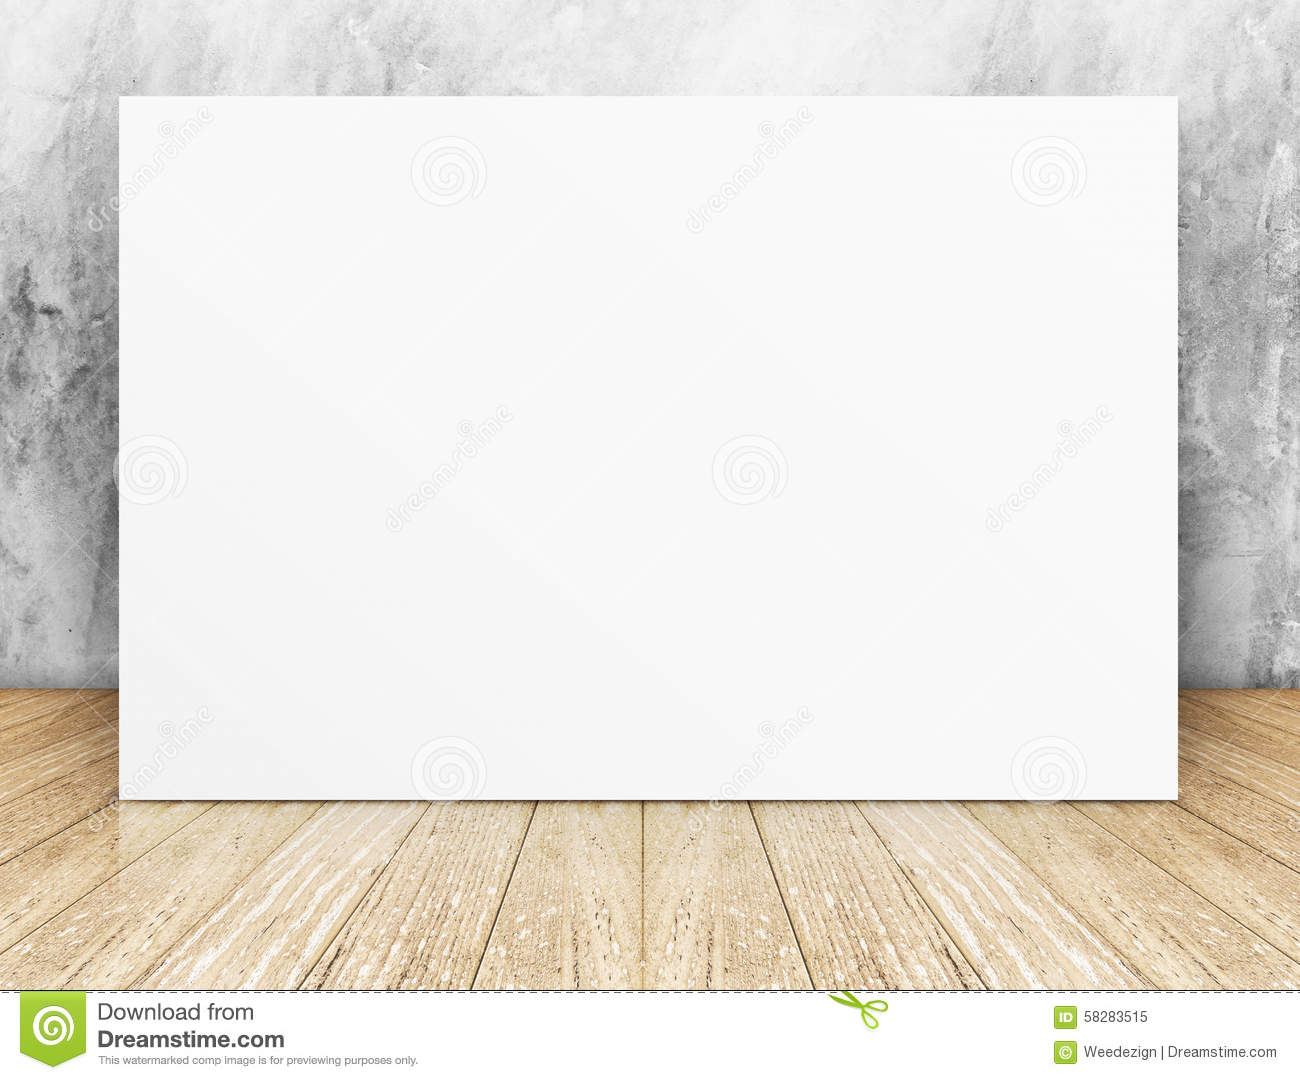 White Blank Square Poster In Concrete Wall And Wooden